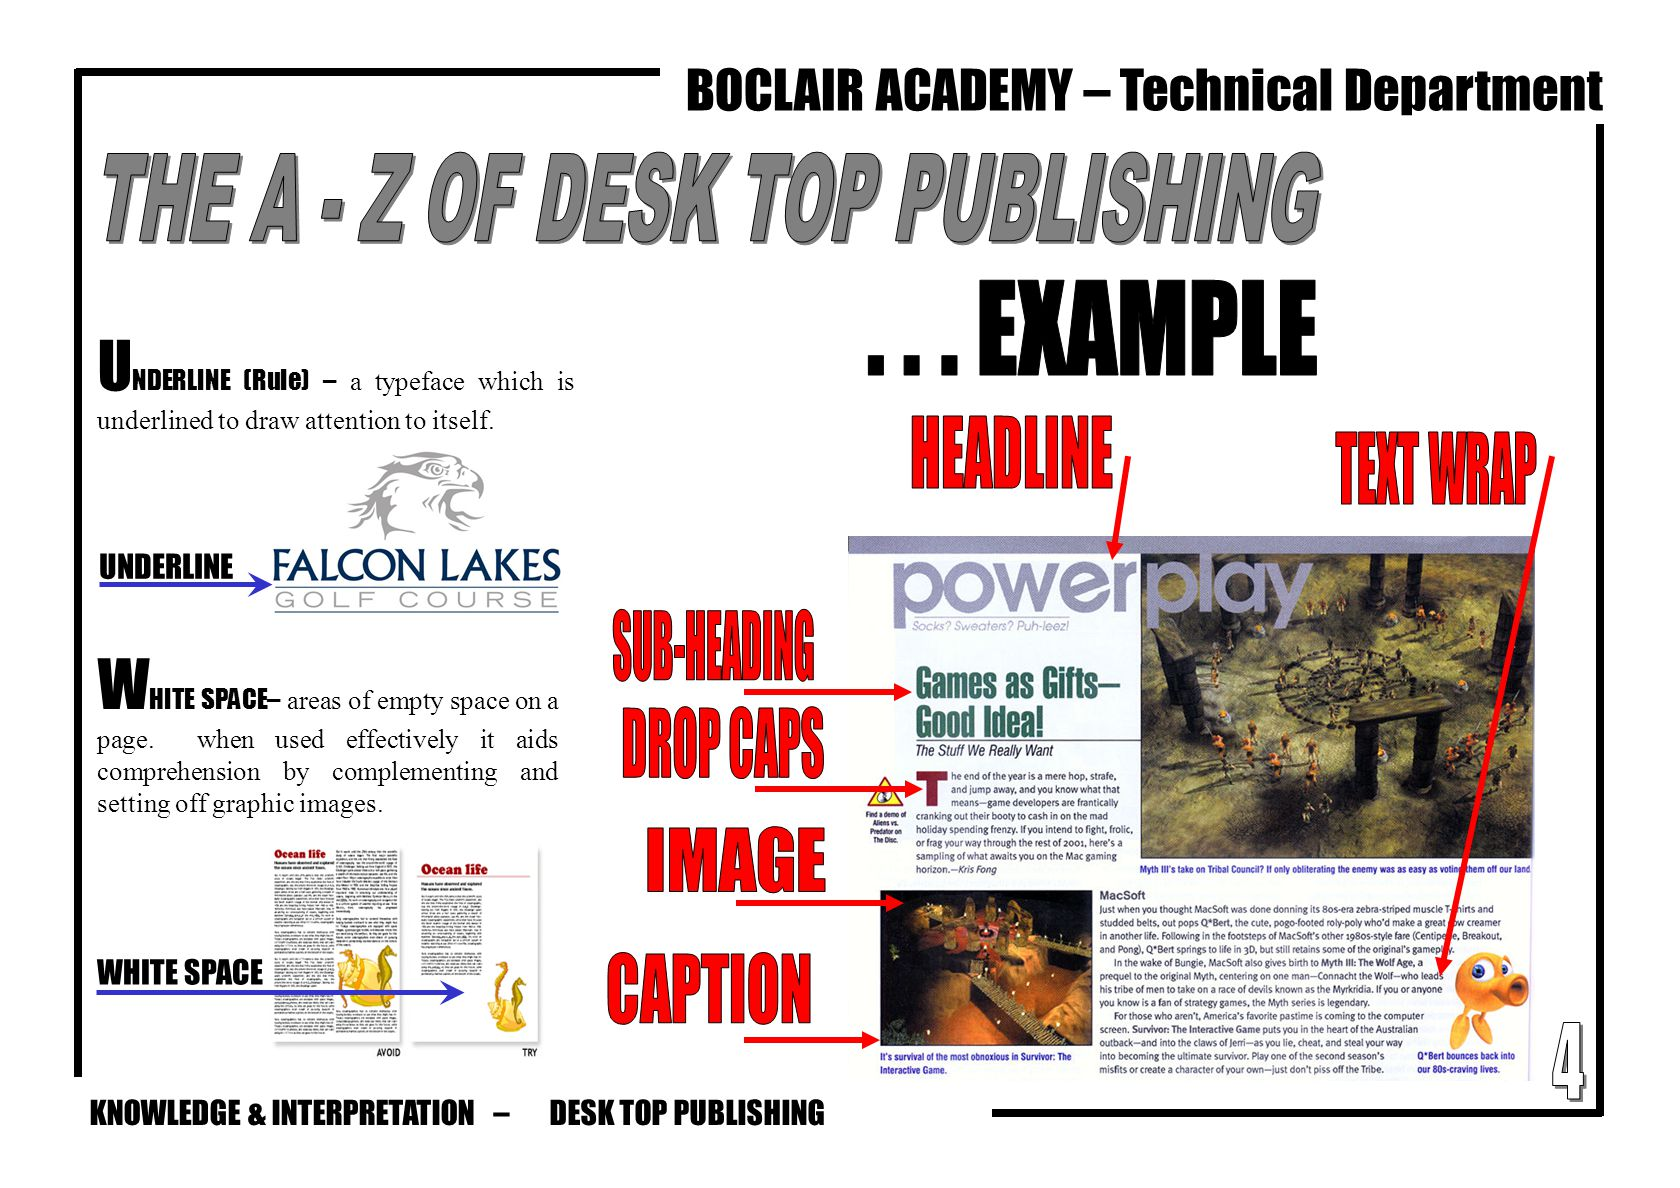 KNOWLEDGE & INTERPRETATION – BOCLAIR ACADEMY – Technical Department U NDERLINE (Rule) – a typeface which is underlined to draw attention to itself. W